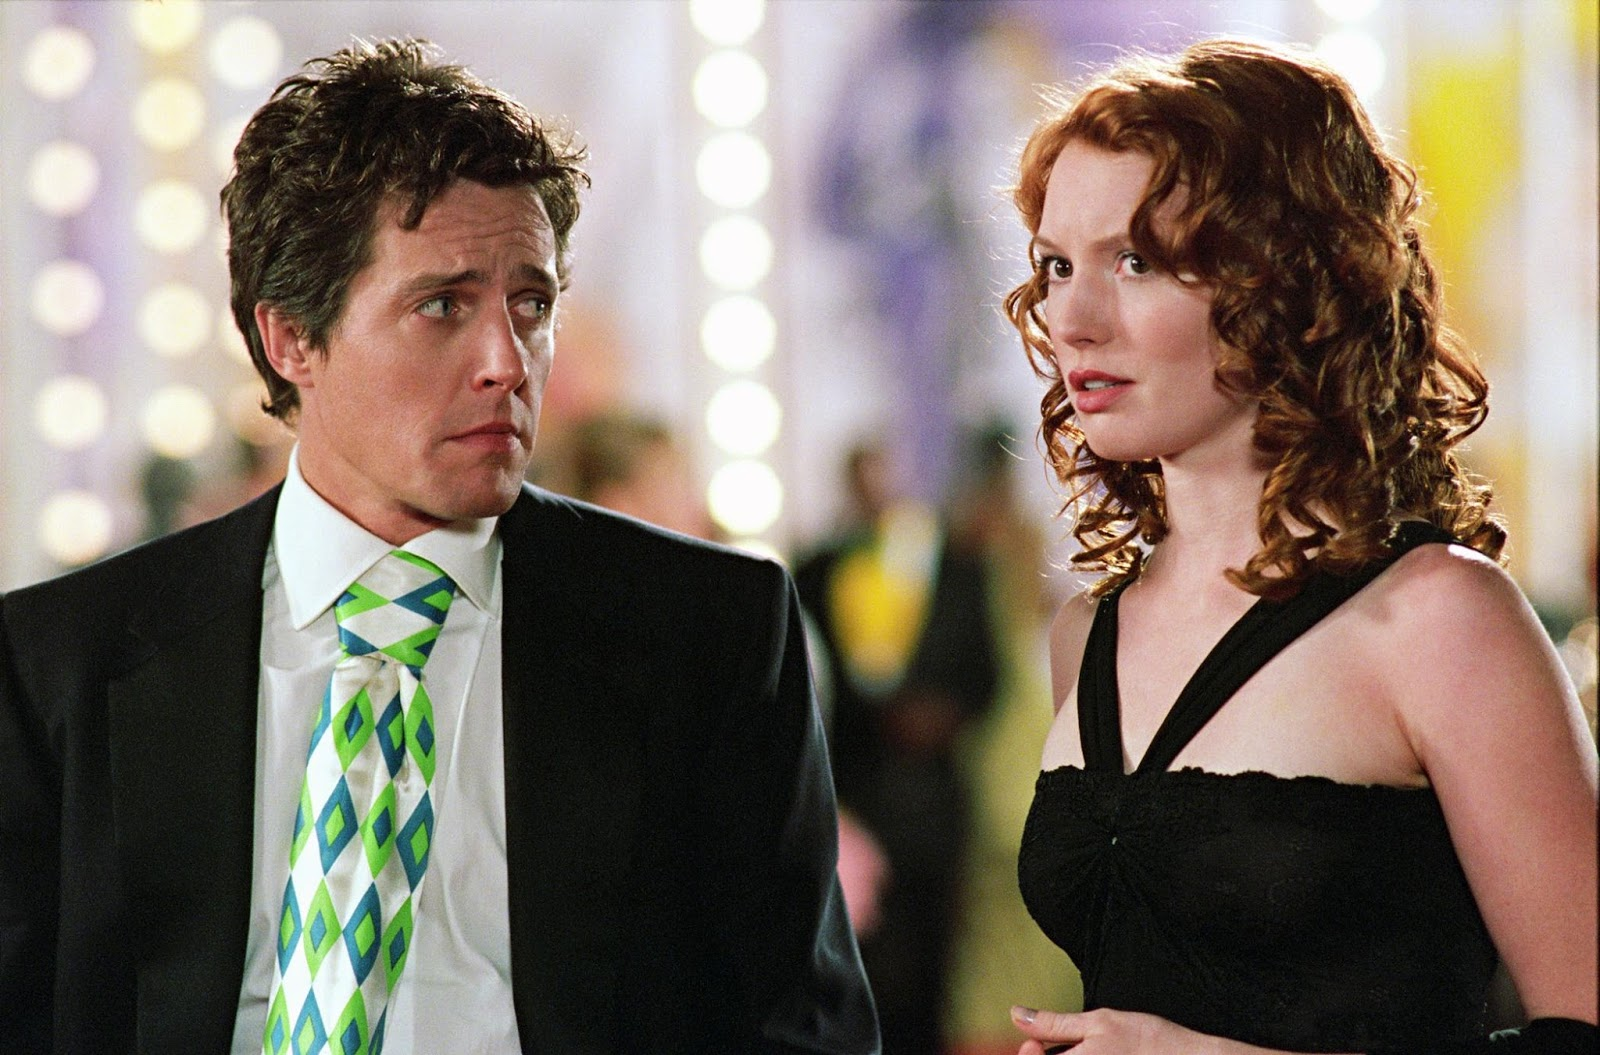 In for the evening? There's a classic rom-com on RTÉ tonight